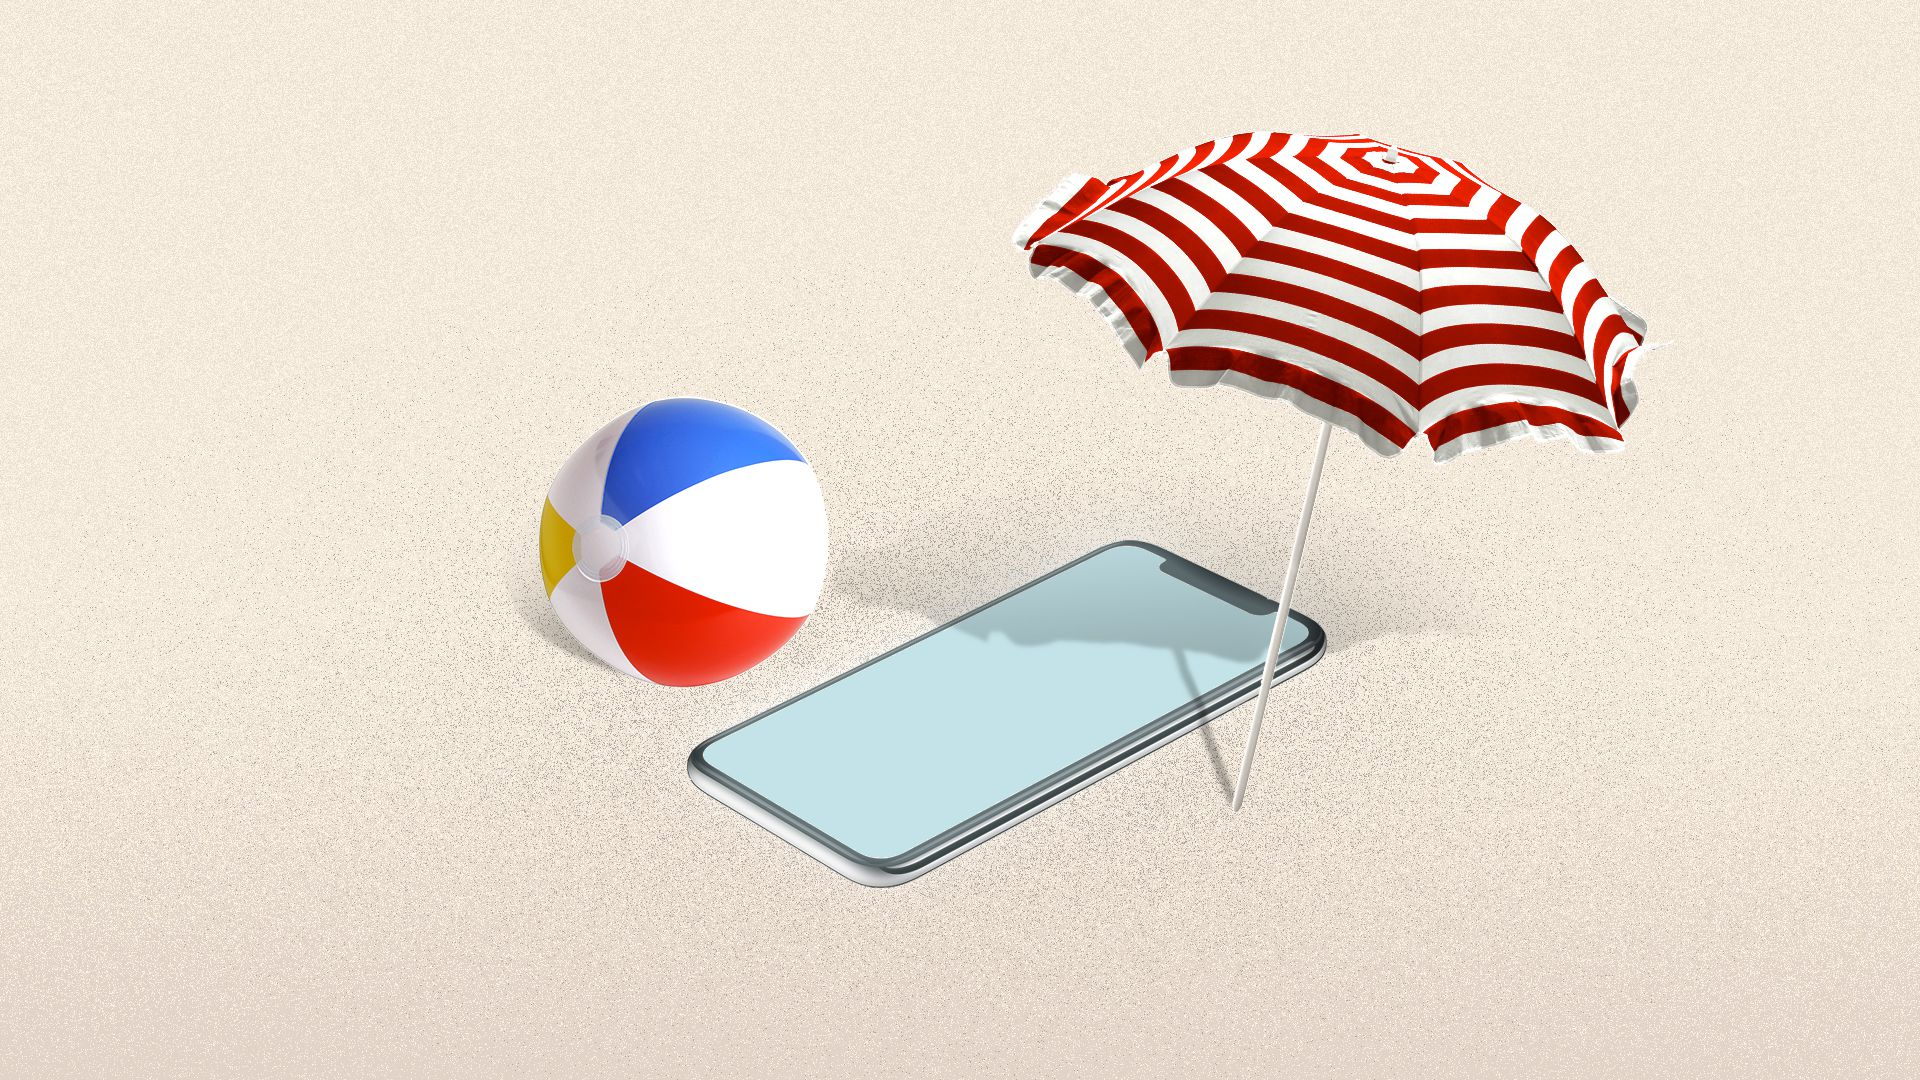 Illustration of a phone laying out on the beach under an umbrella.